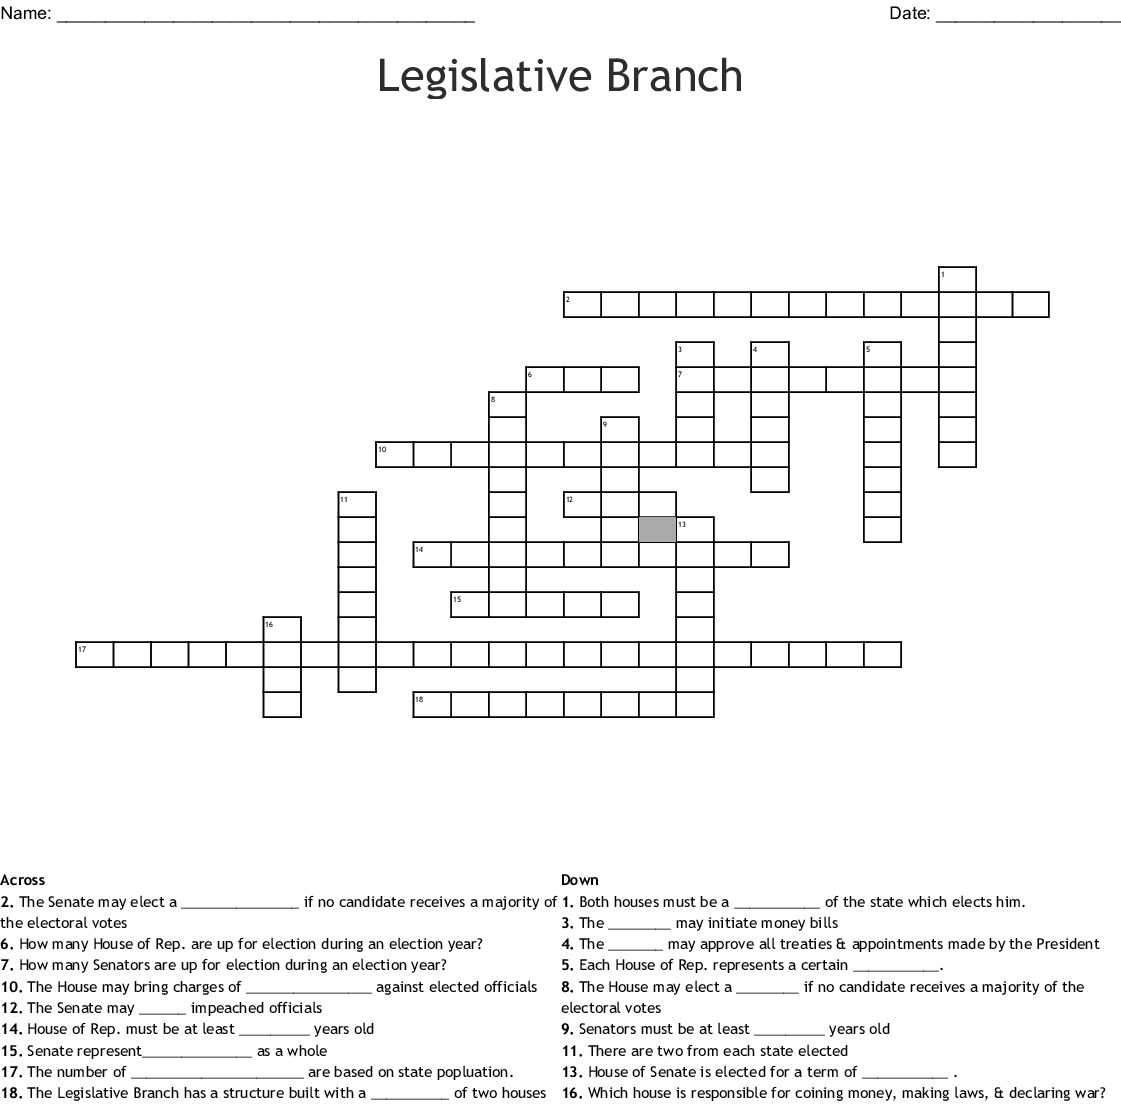 Worksheet The Legislative Branch Answers